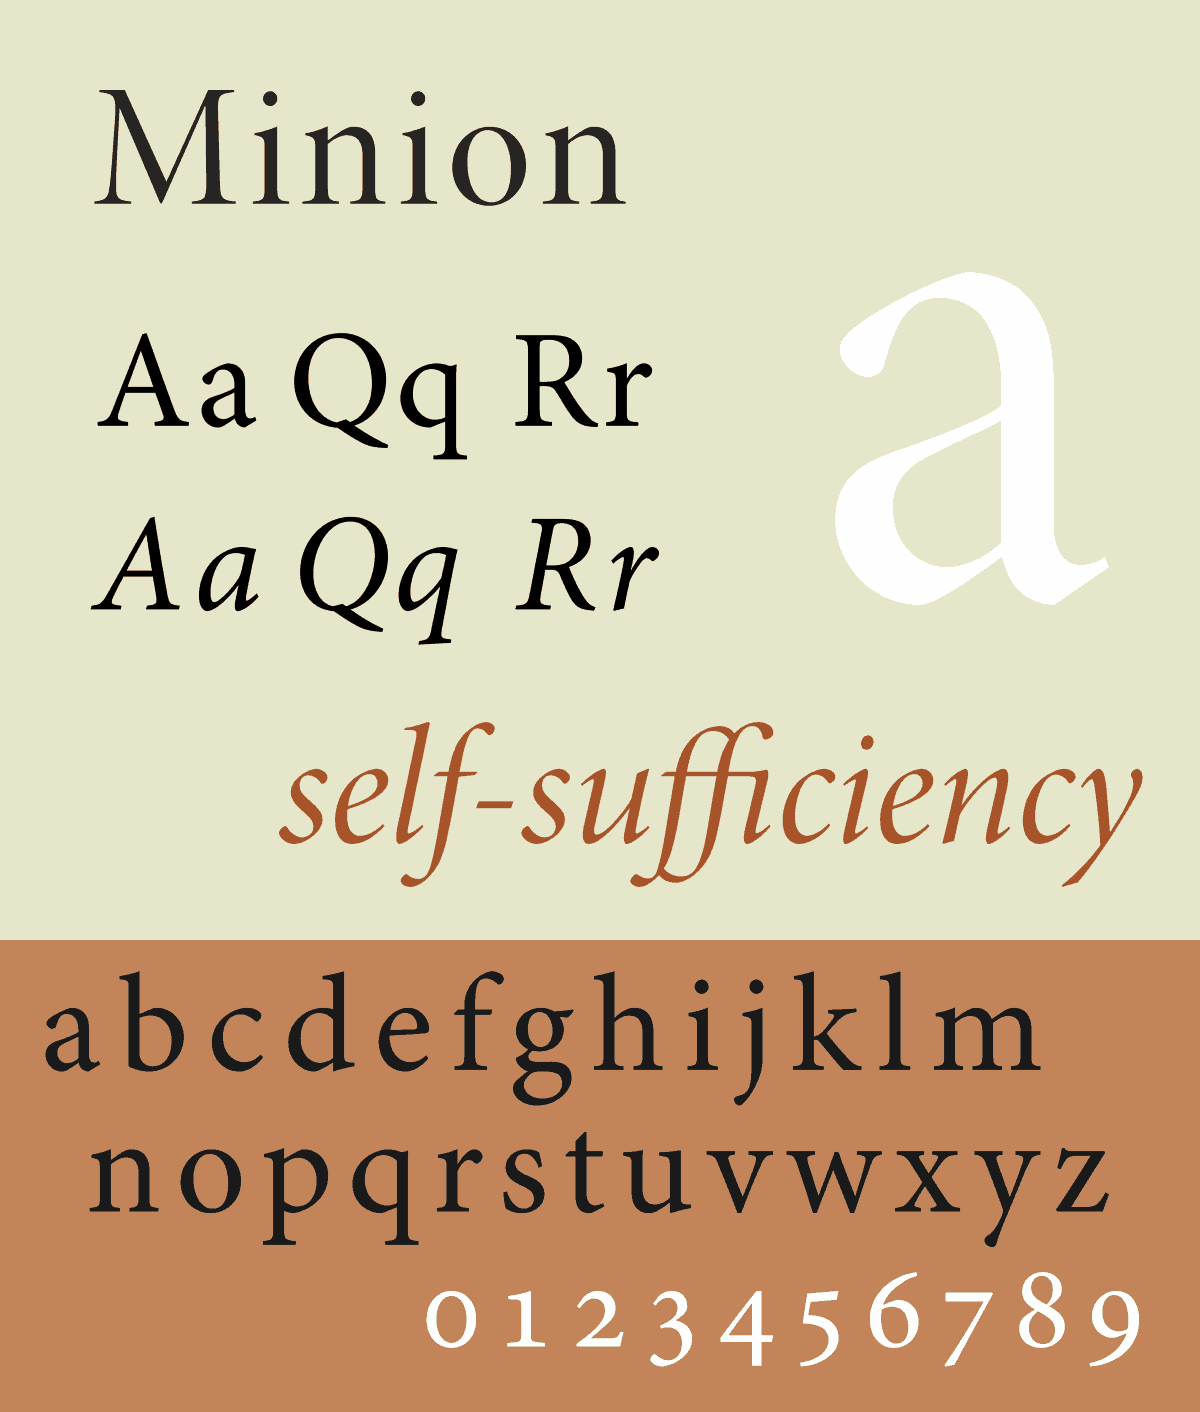 Download Minion [1990 - Robert Slimbach] font (typeface)